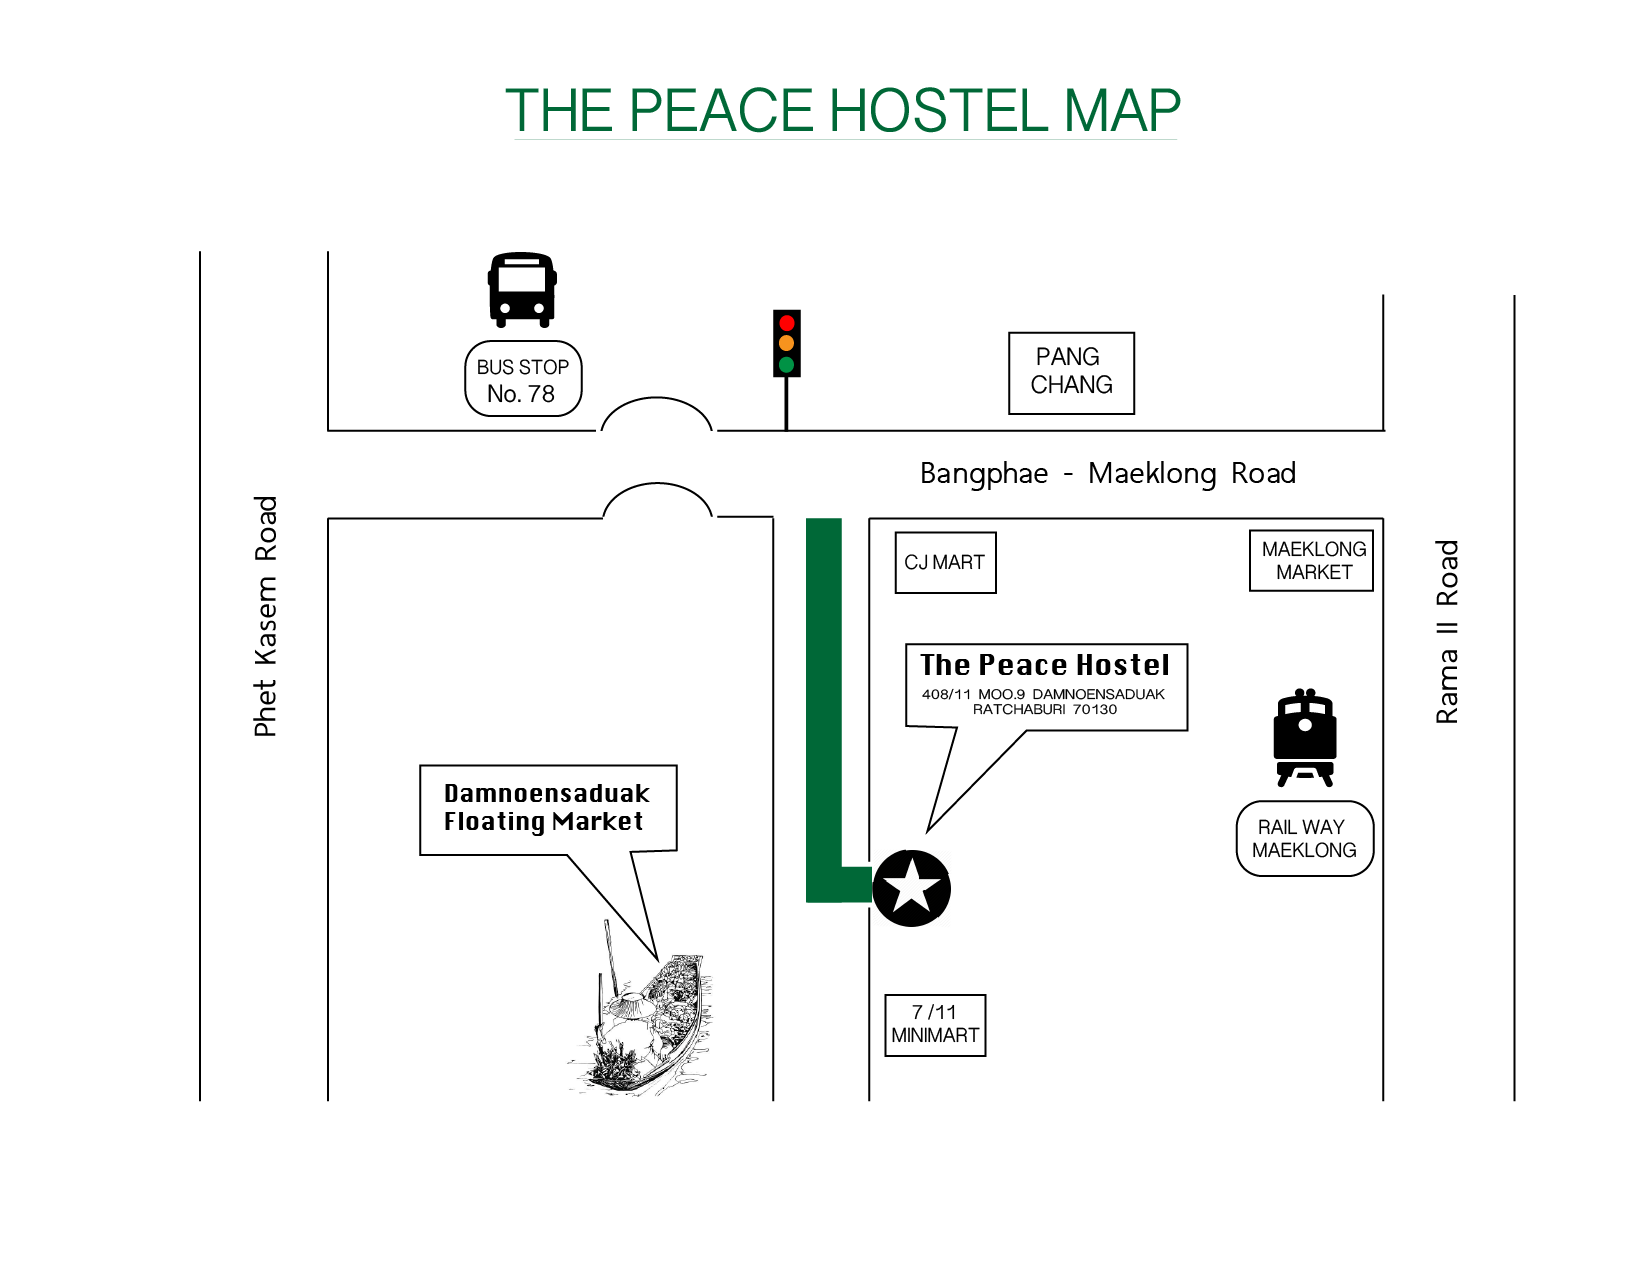 The P Map